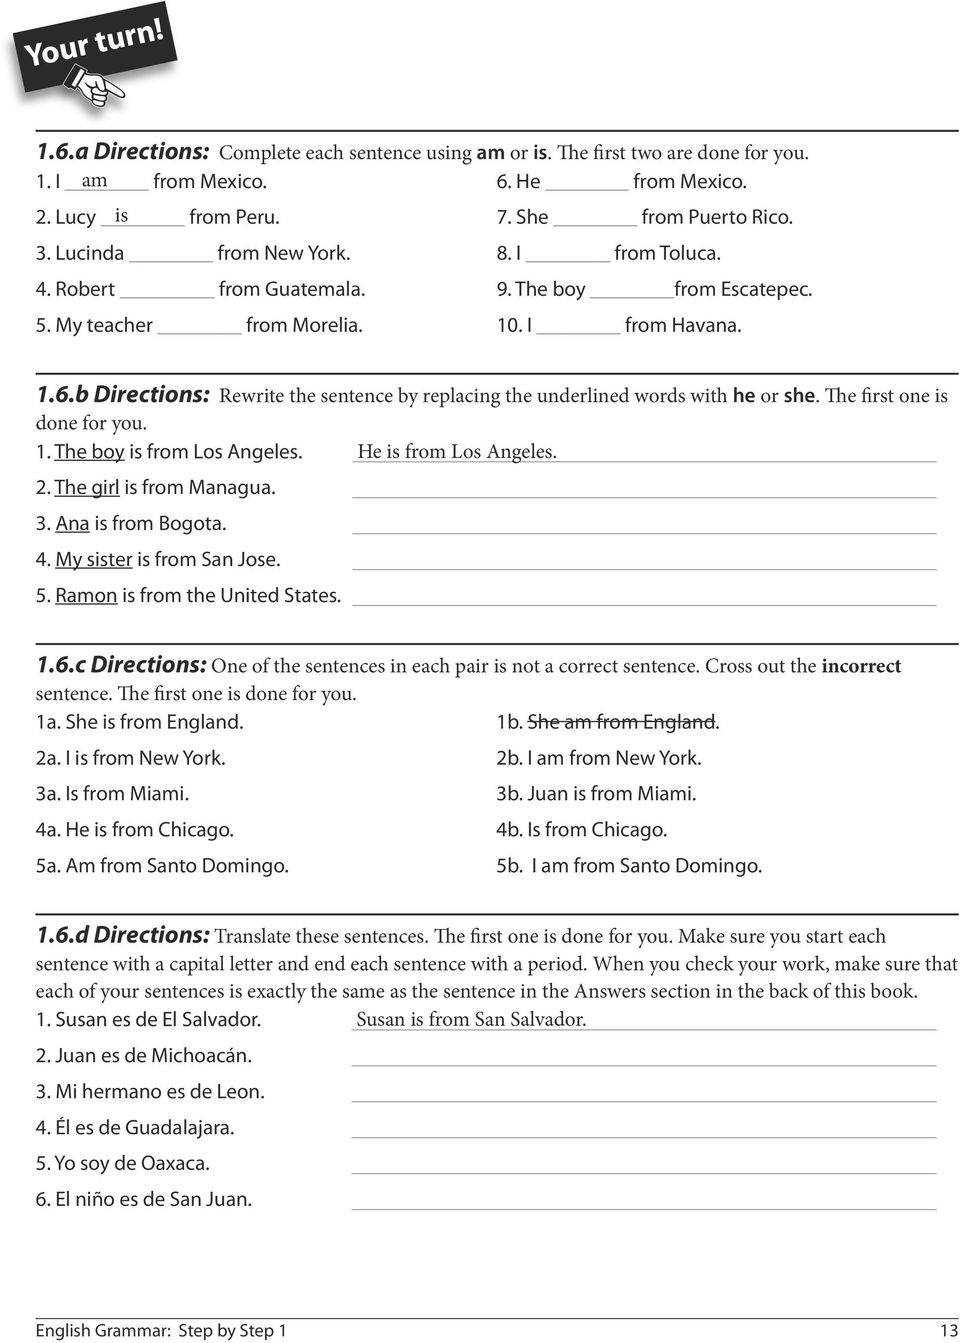 worksheet En El Vecindario Capitulo 2 Worksheet Answers english grammar step by tenaya press palo alto ca written b directions rewrite the sentence replacing underlined words with he or she